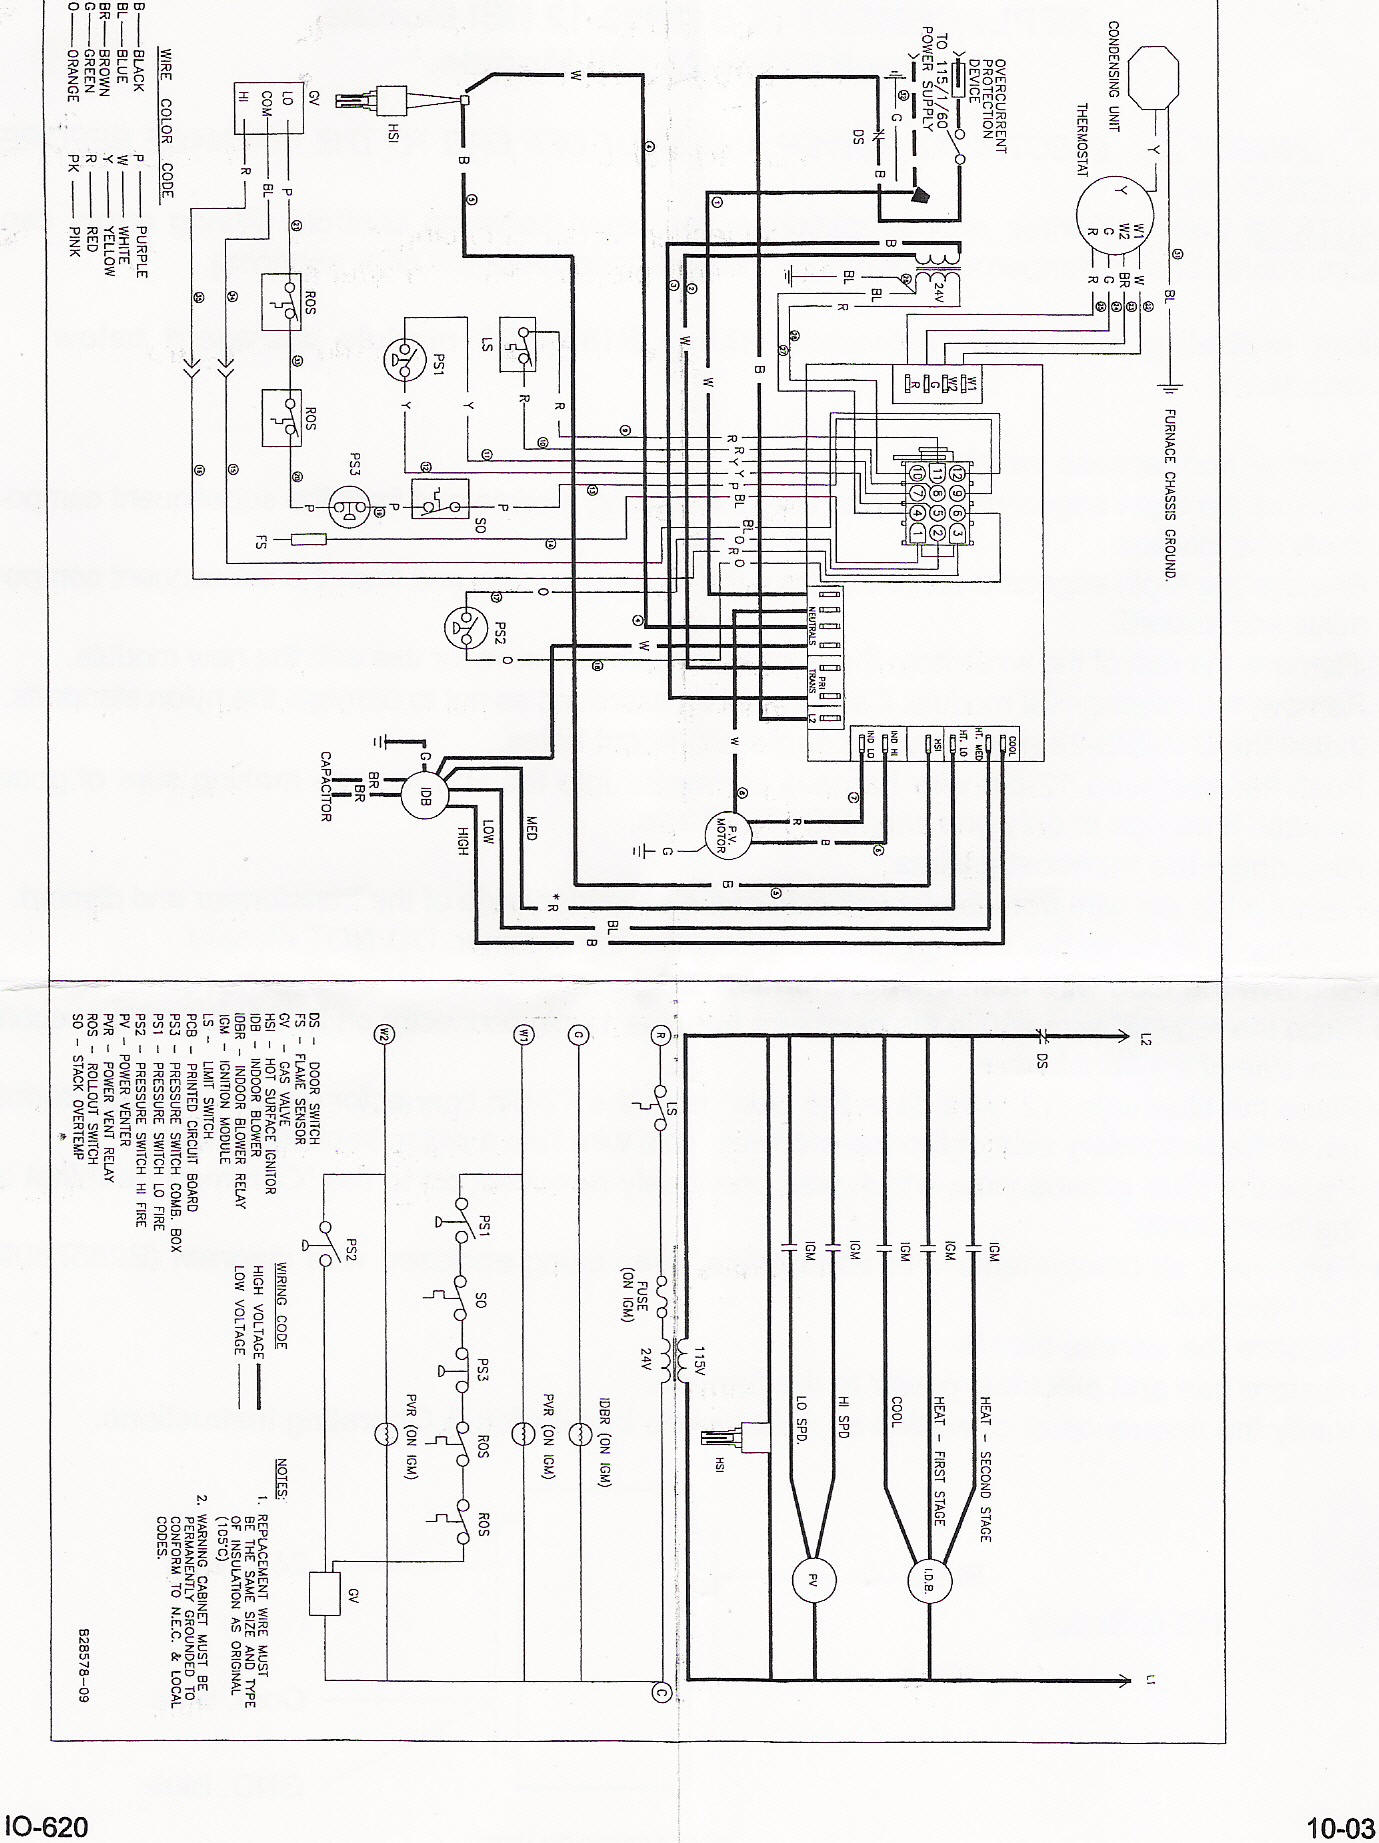 goodma2 instr goodman control board b18099 23 instructions Basic Electrical Wiring Diagrams at mifinder.co